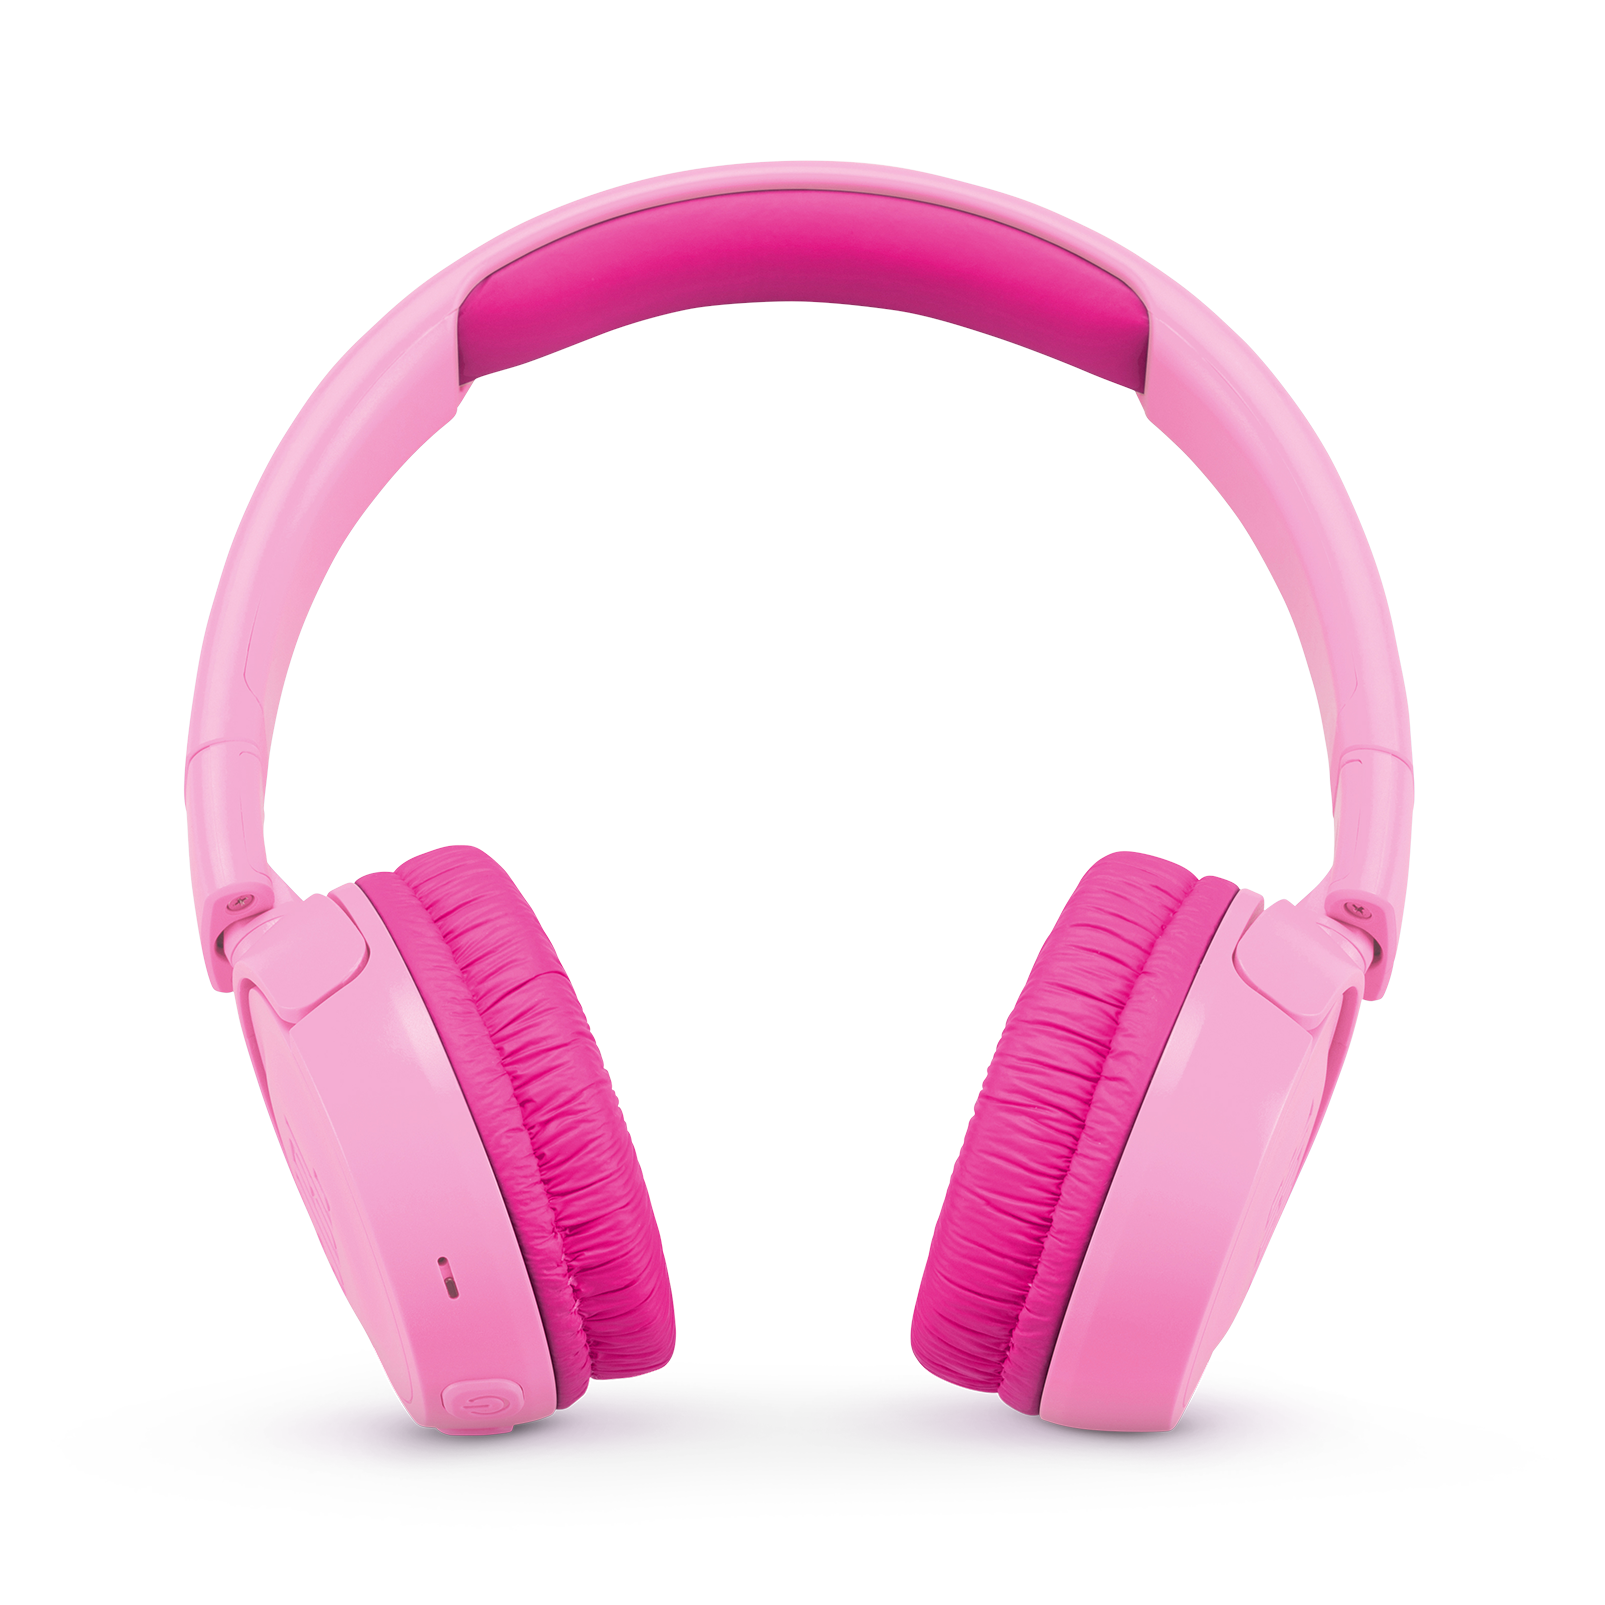 JBL JR300BT - Punky Pink - Kids Wireless on-ear headphones - Front